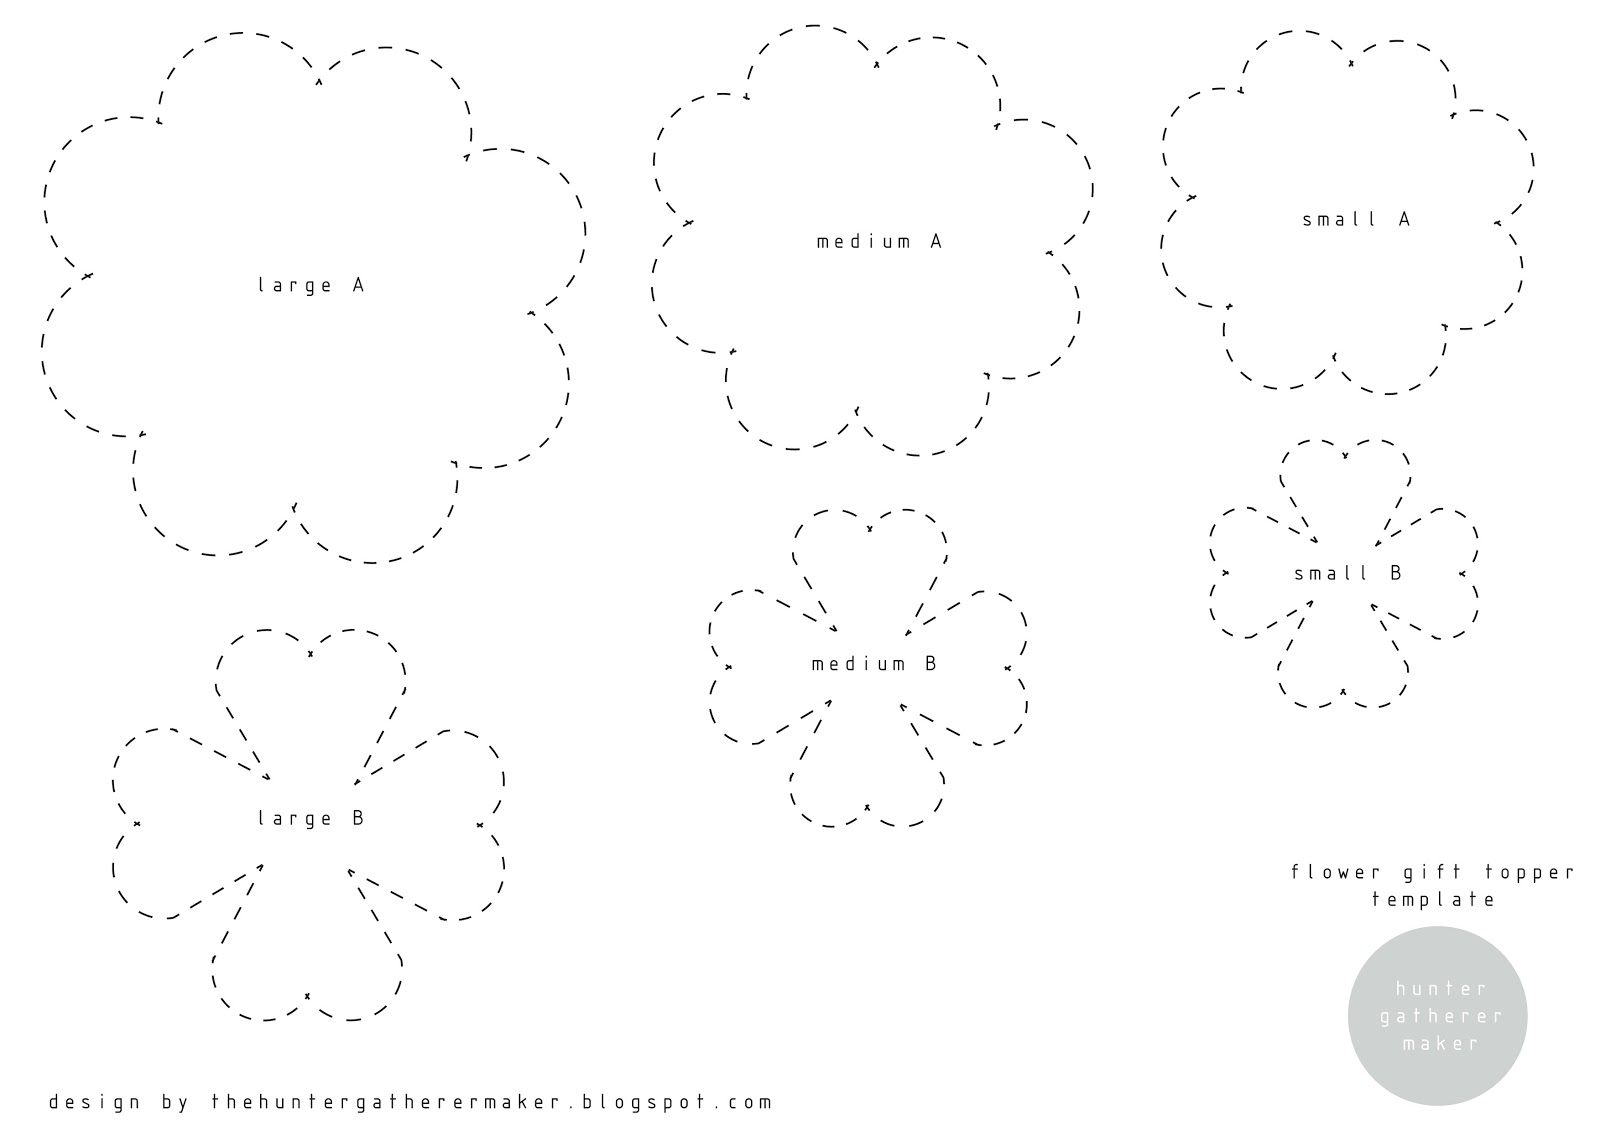 big flower paper template - hunter gatherer maker